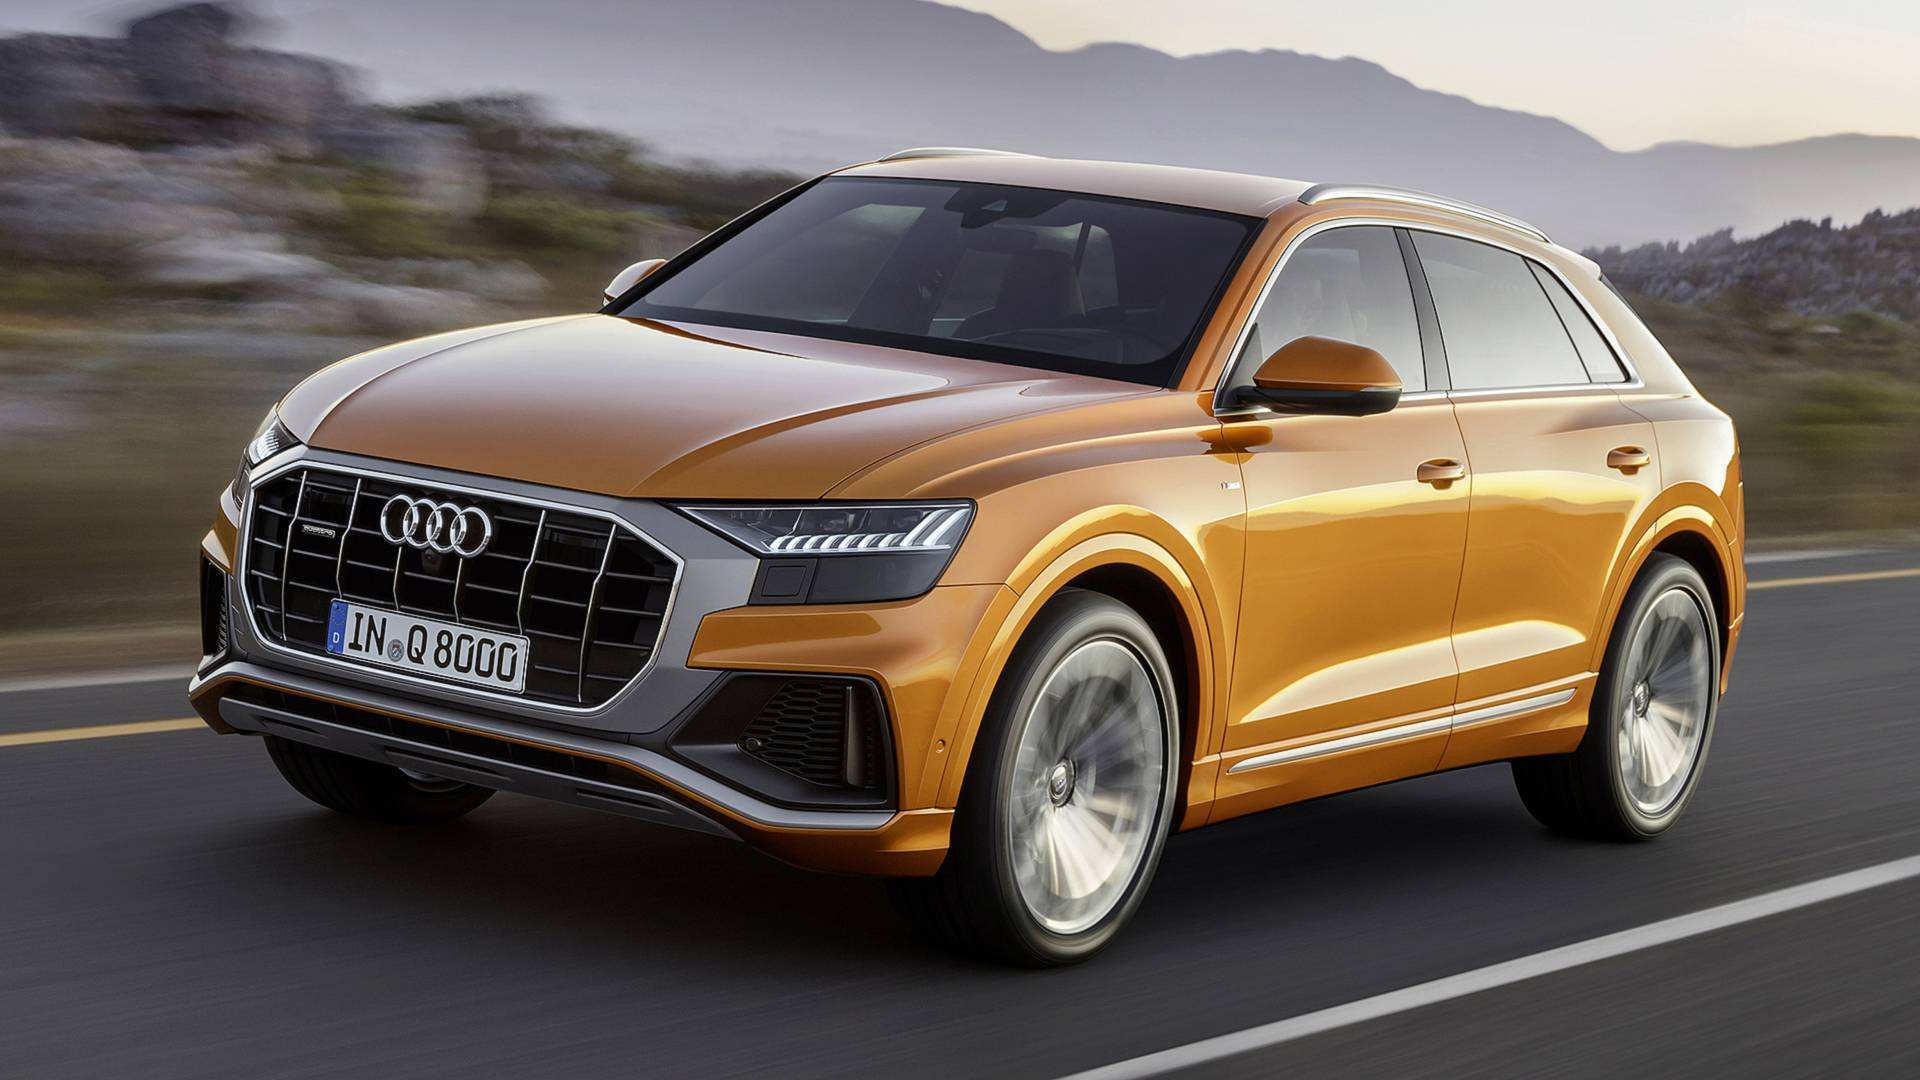 30 Concept of 2019 Audi Q7 Tdi Usa Redesign by 2019 Audi Q7 Tdi Usa